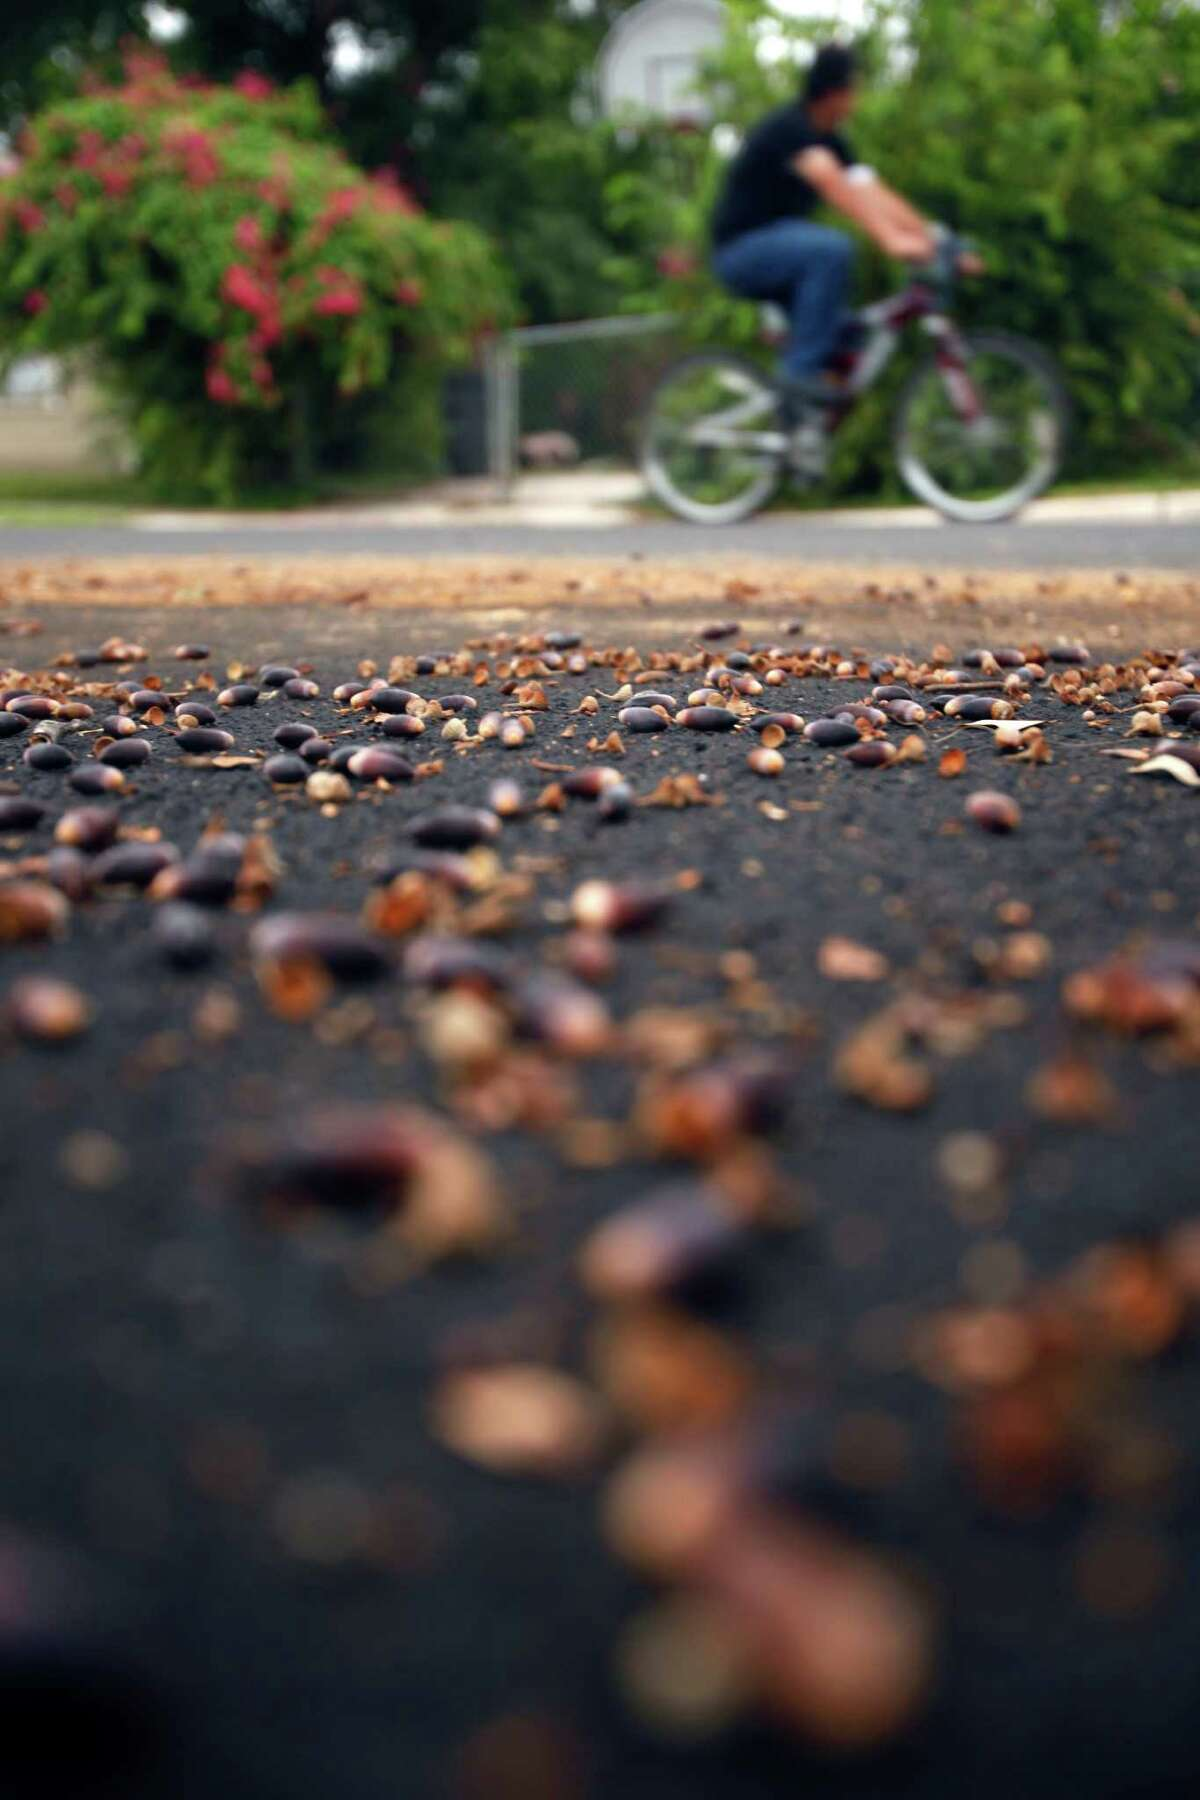 Despite an ongoing drought, well-timed rains have brought a bumper crop of acorns to the San Antonio area.